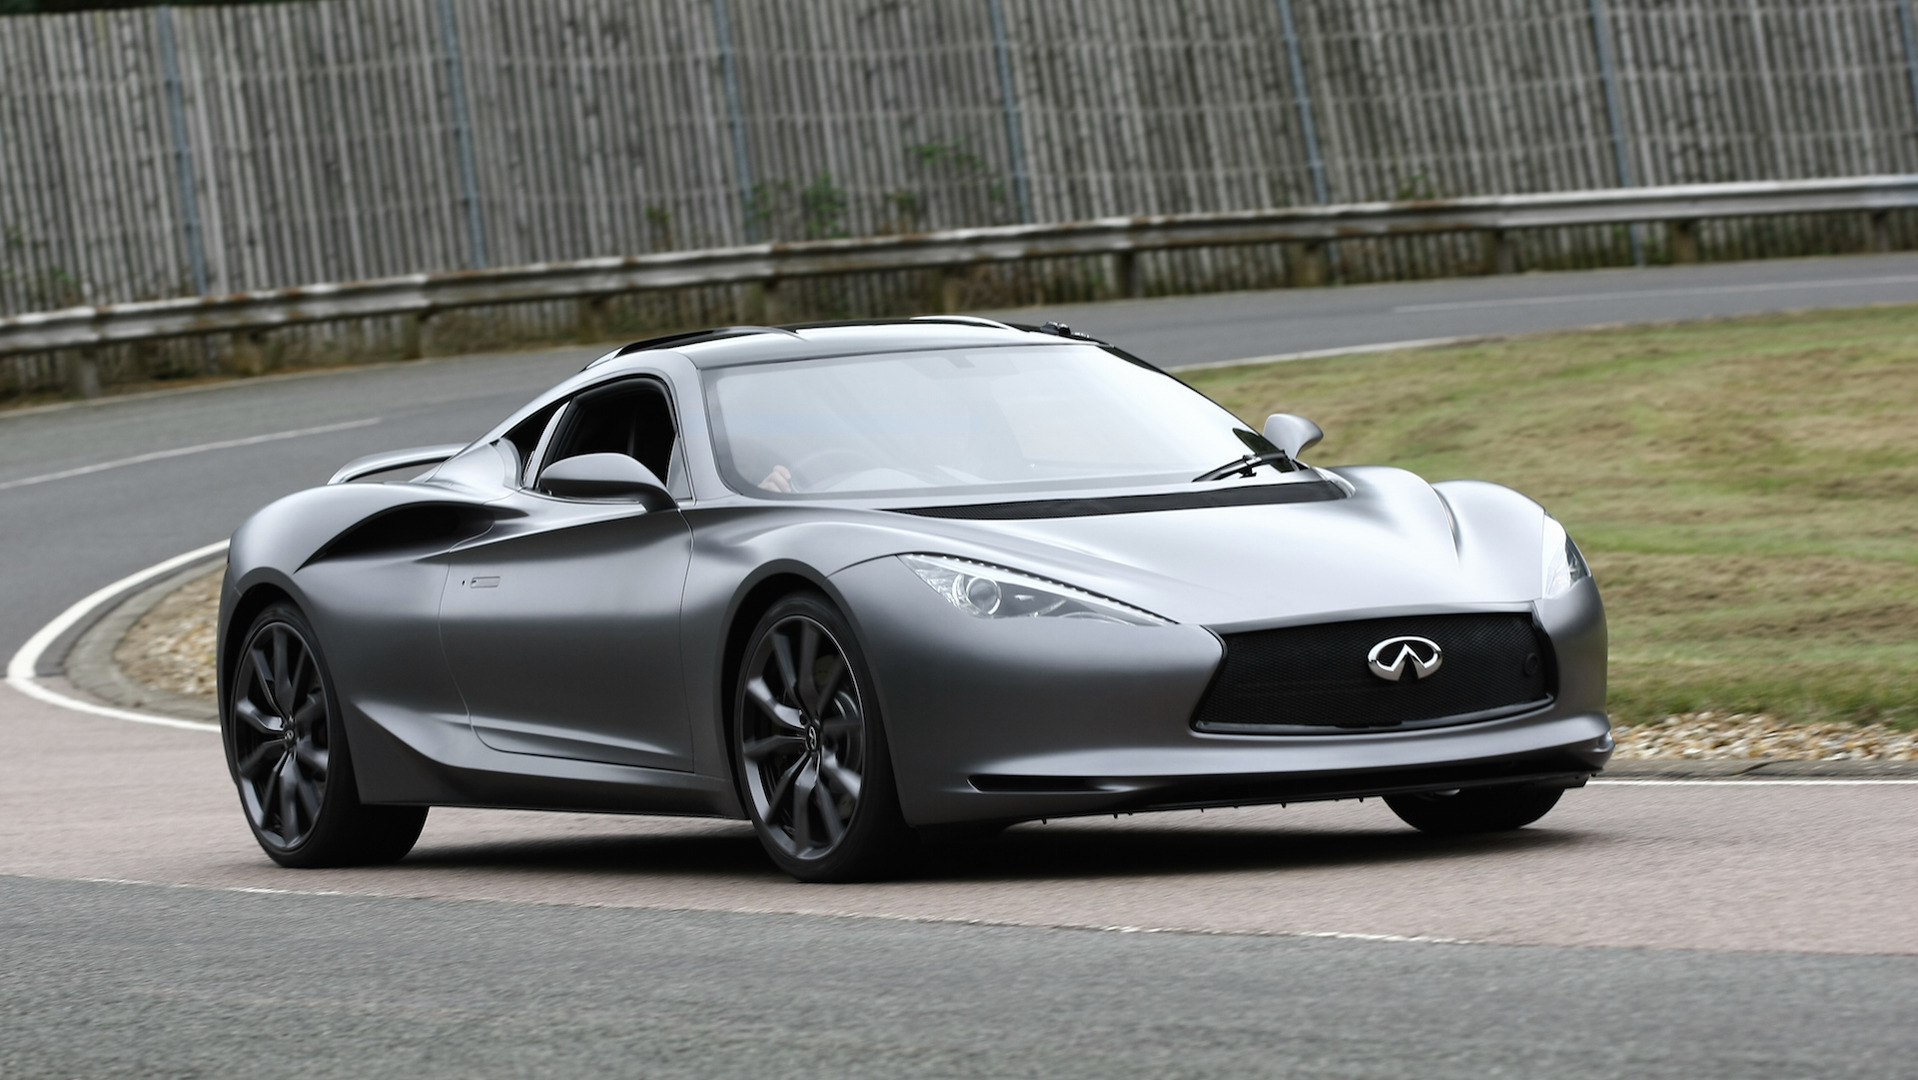 Infiniti Confirms Electric Sports Car For 2020